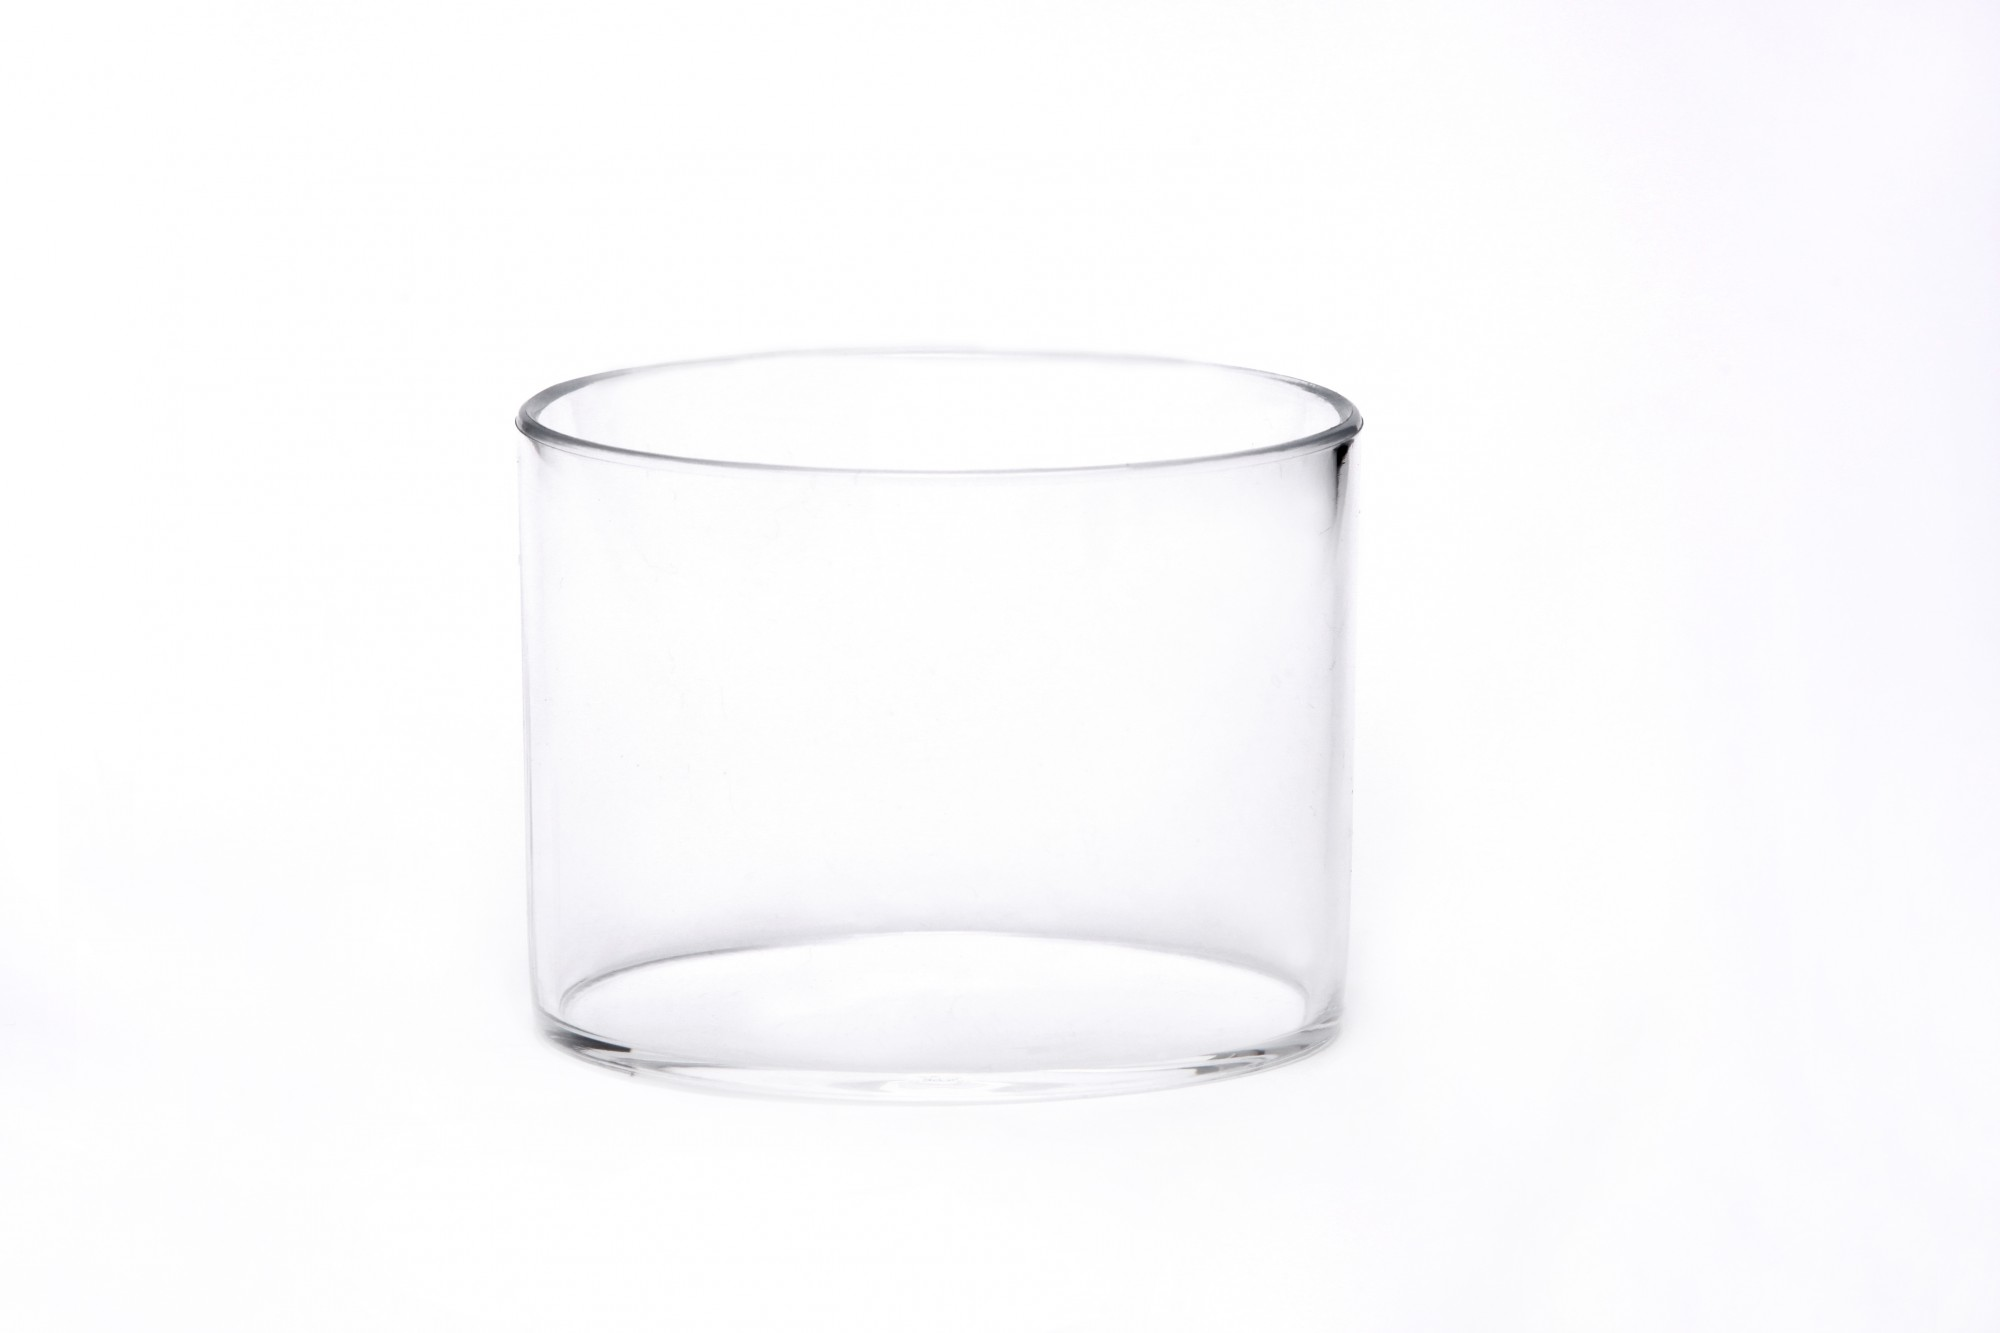 CLEAR PLASTIC CUPHOLDER INSERT